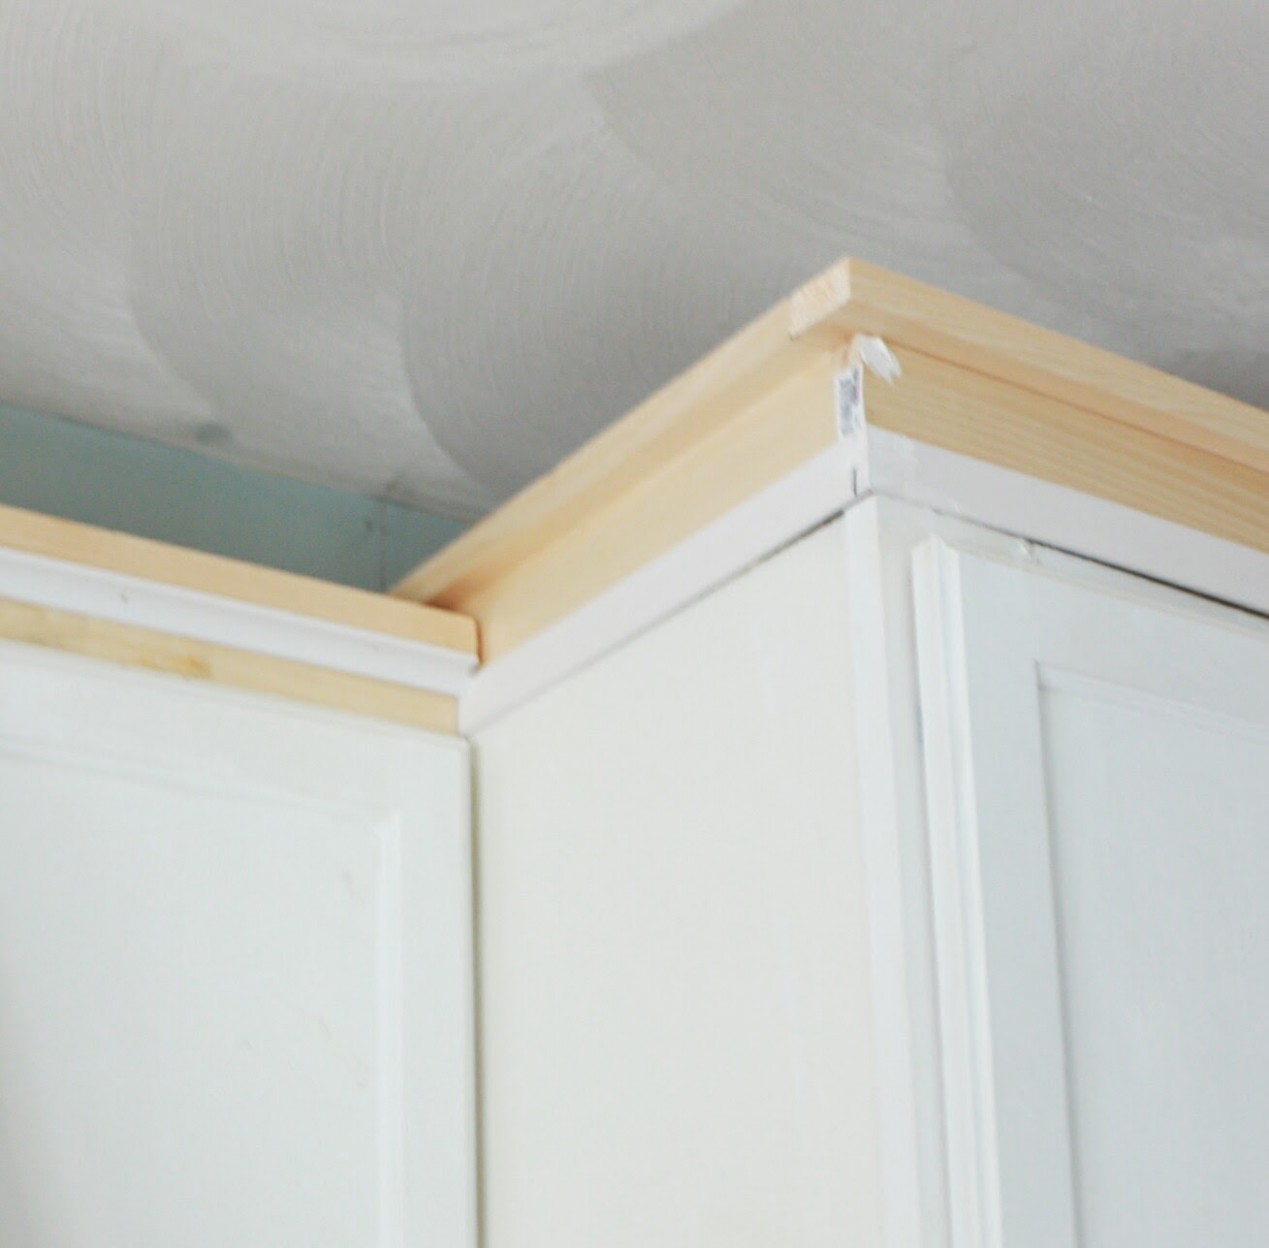 My DIY Kitchen: Cabinet Crown Molding, How to Fake the Look  - How To Install 2 Piece Crown Molding On Kitchen Cabinets